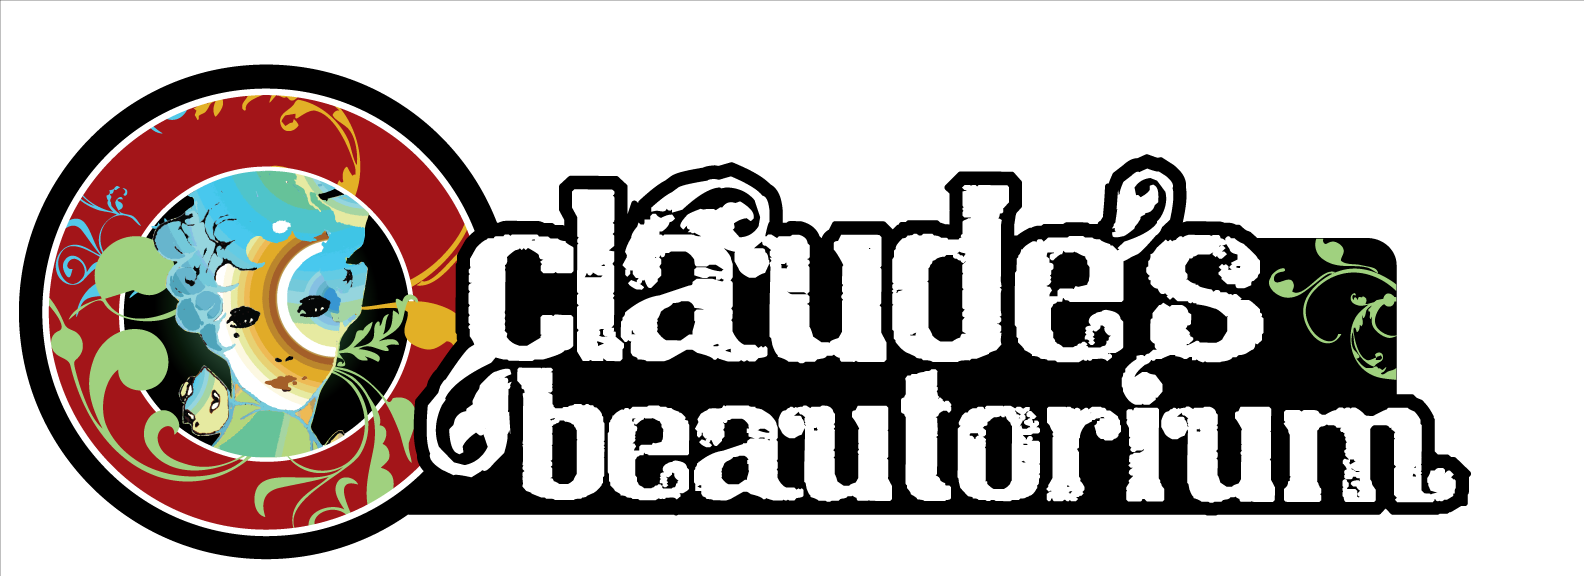 Claude's Beautorium is one of Omahas Oldest Salons | Omaha Hair Salon | Stylists |Hair Color